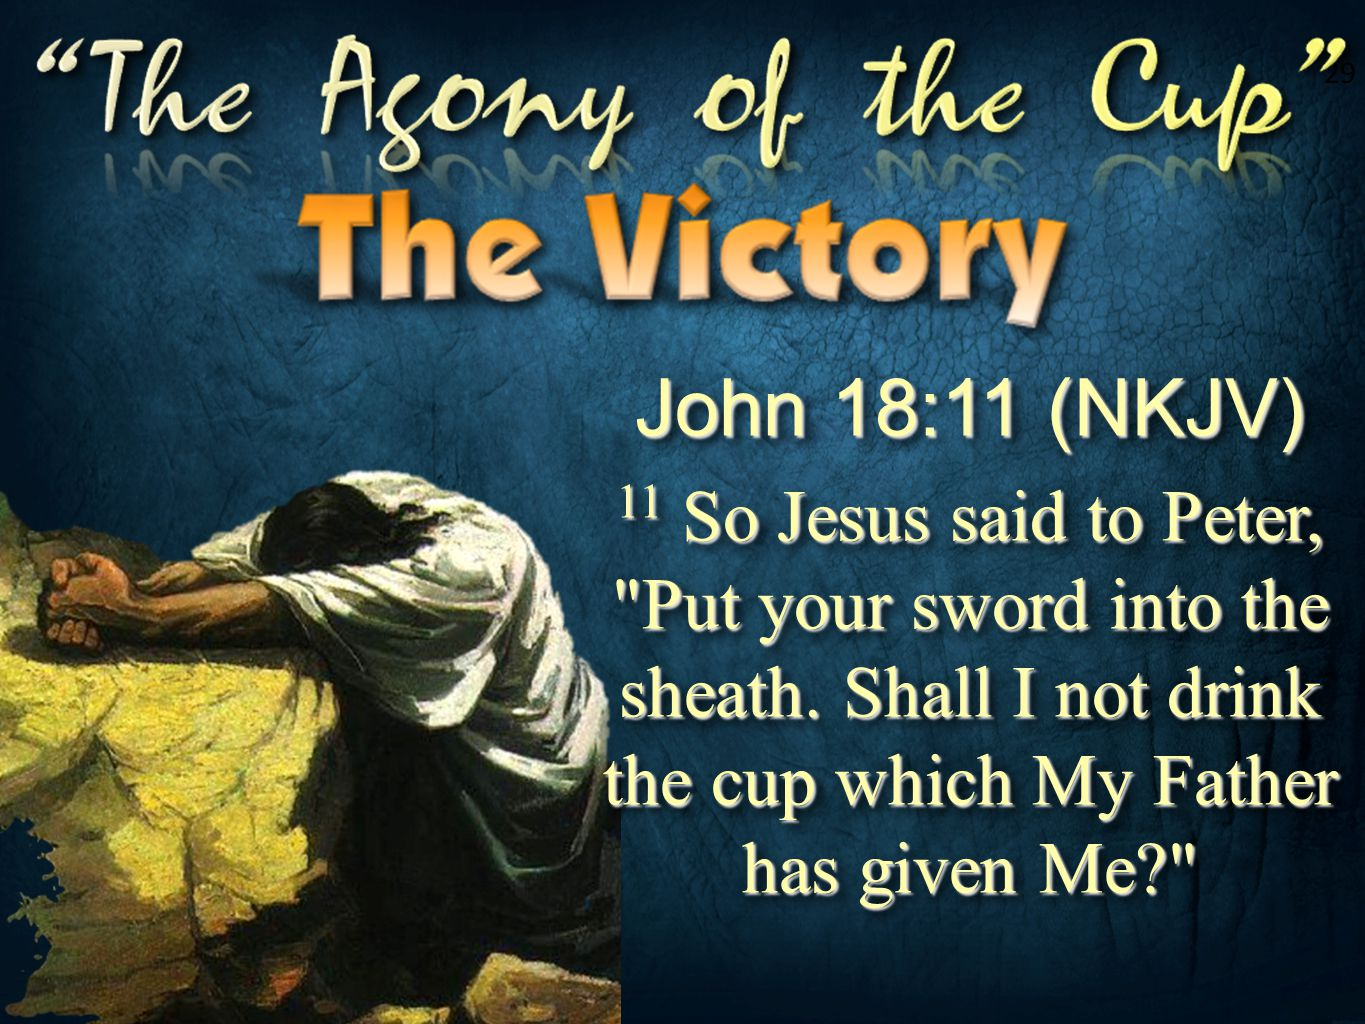 29 John 18:11 (NKJV) 11 So Jesus said to Peter, Put your sword into the sheath. Shall I not drink the cup which My Father has given Me